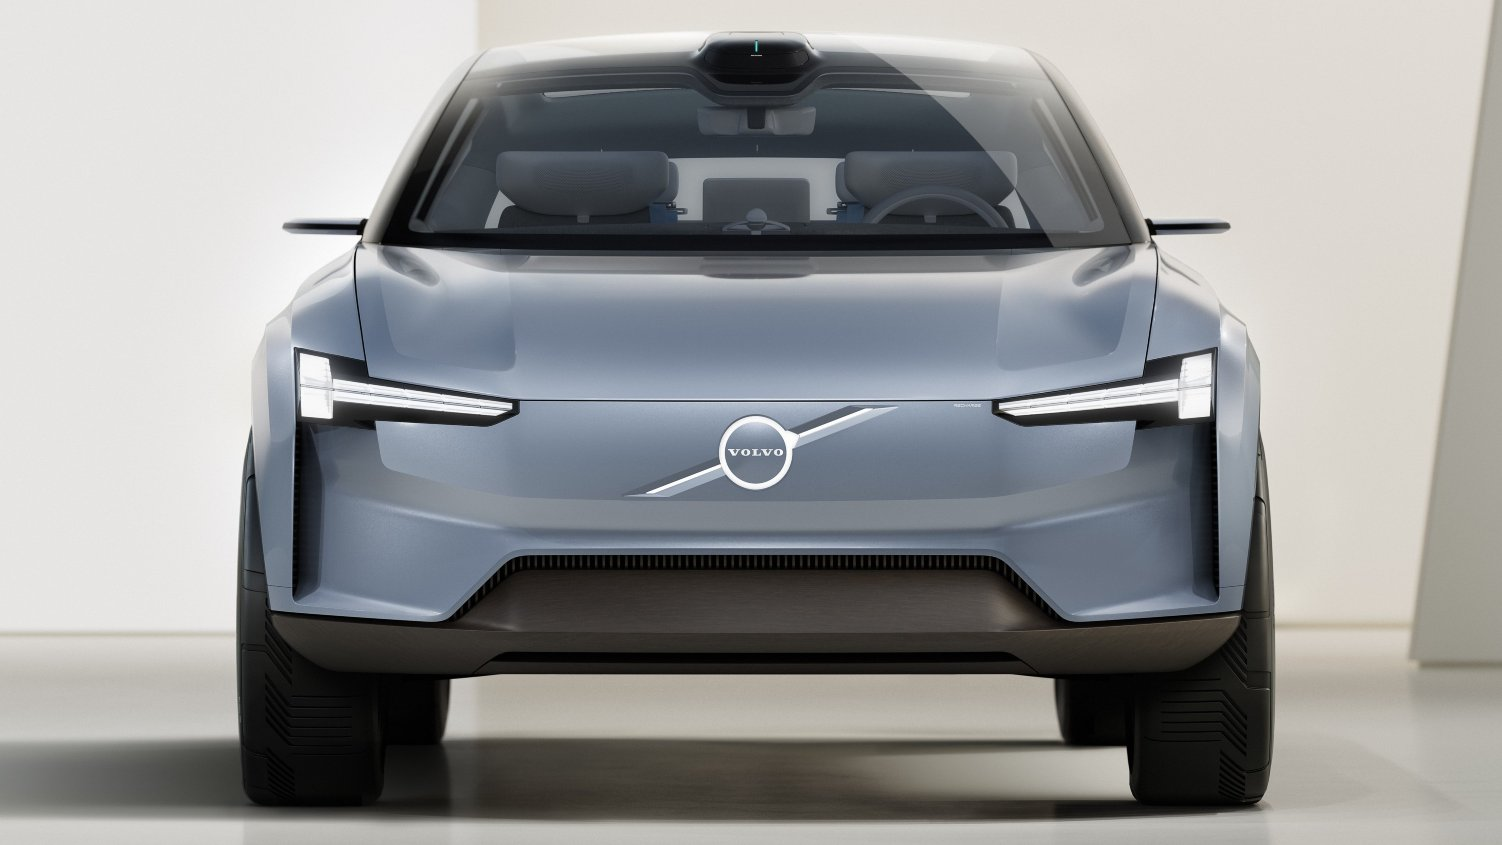 The Volvo Concept Recharge was revealed at the company's Tech Moment event. Image: Volvo